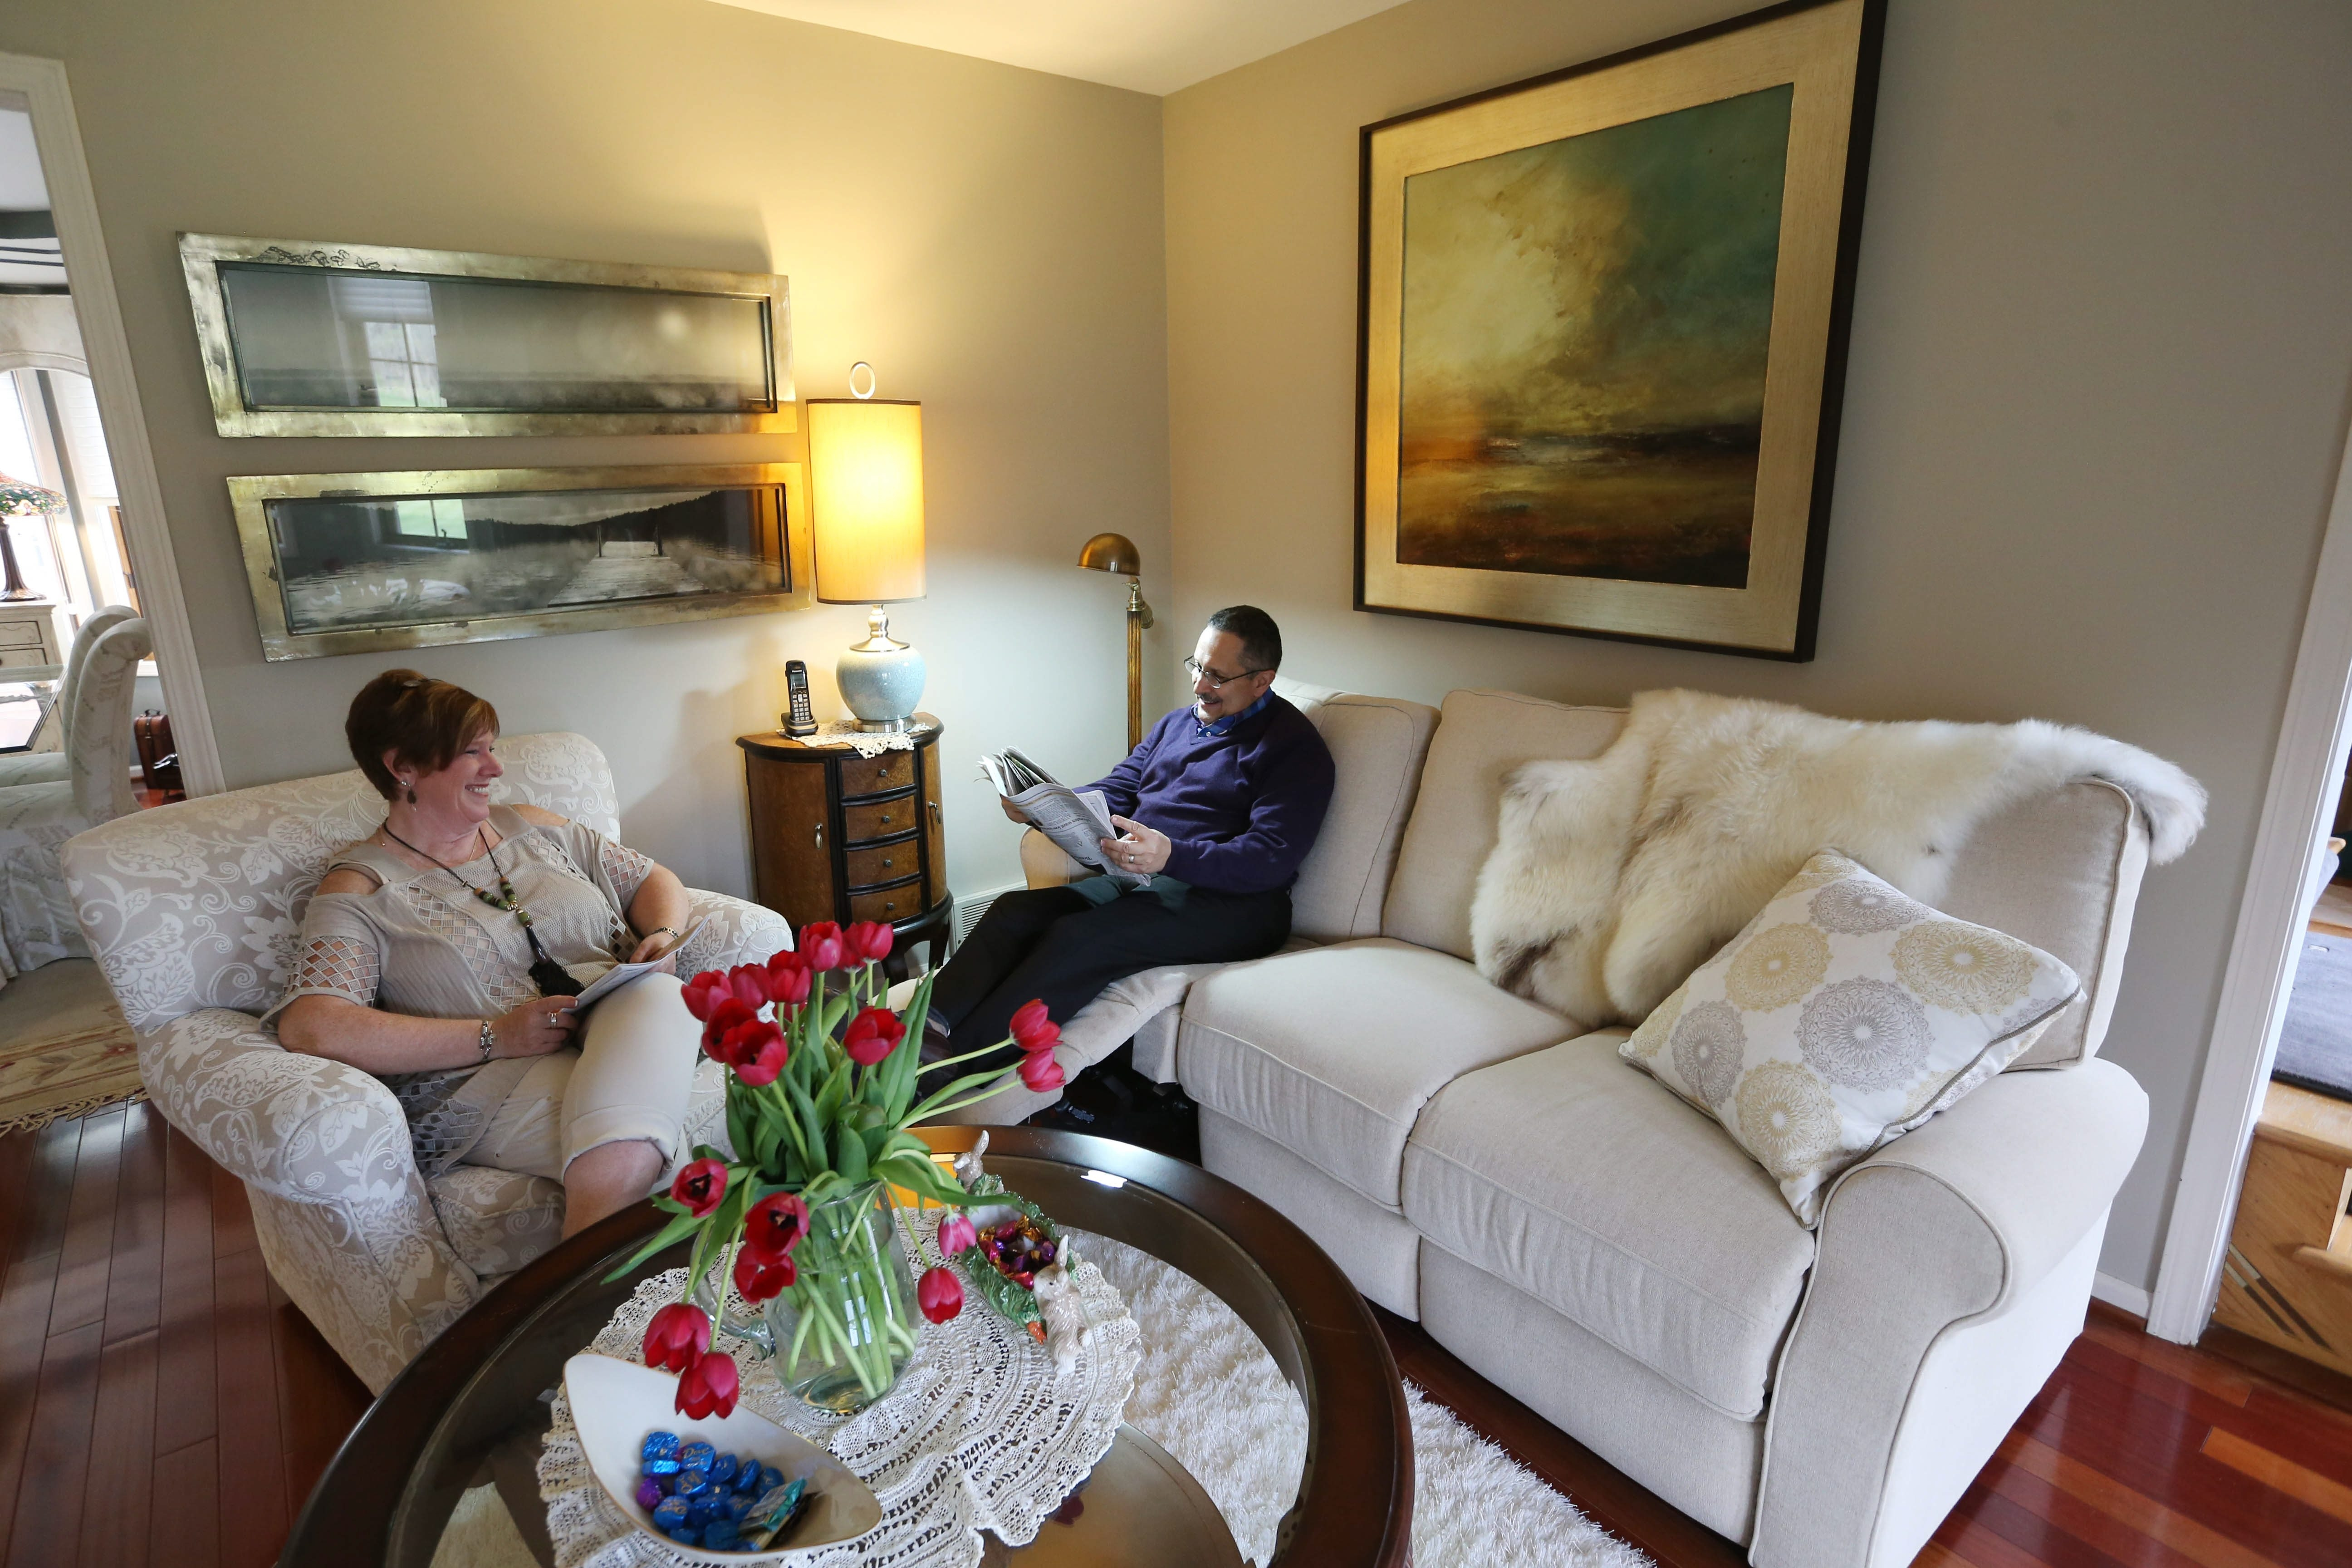 Carlos and Dana Martinez have a new favorite room since they recently remodeled their living room where they now love to read and relax. The room features comfortable furniture, a baby grand piano and a fireplace.